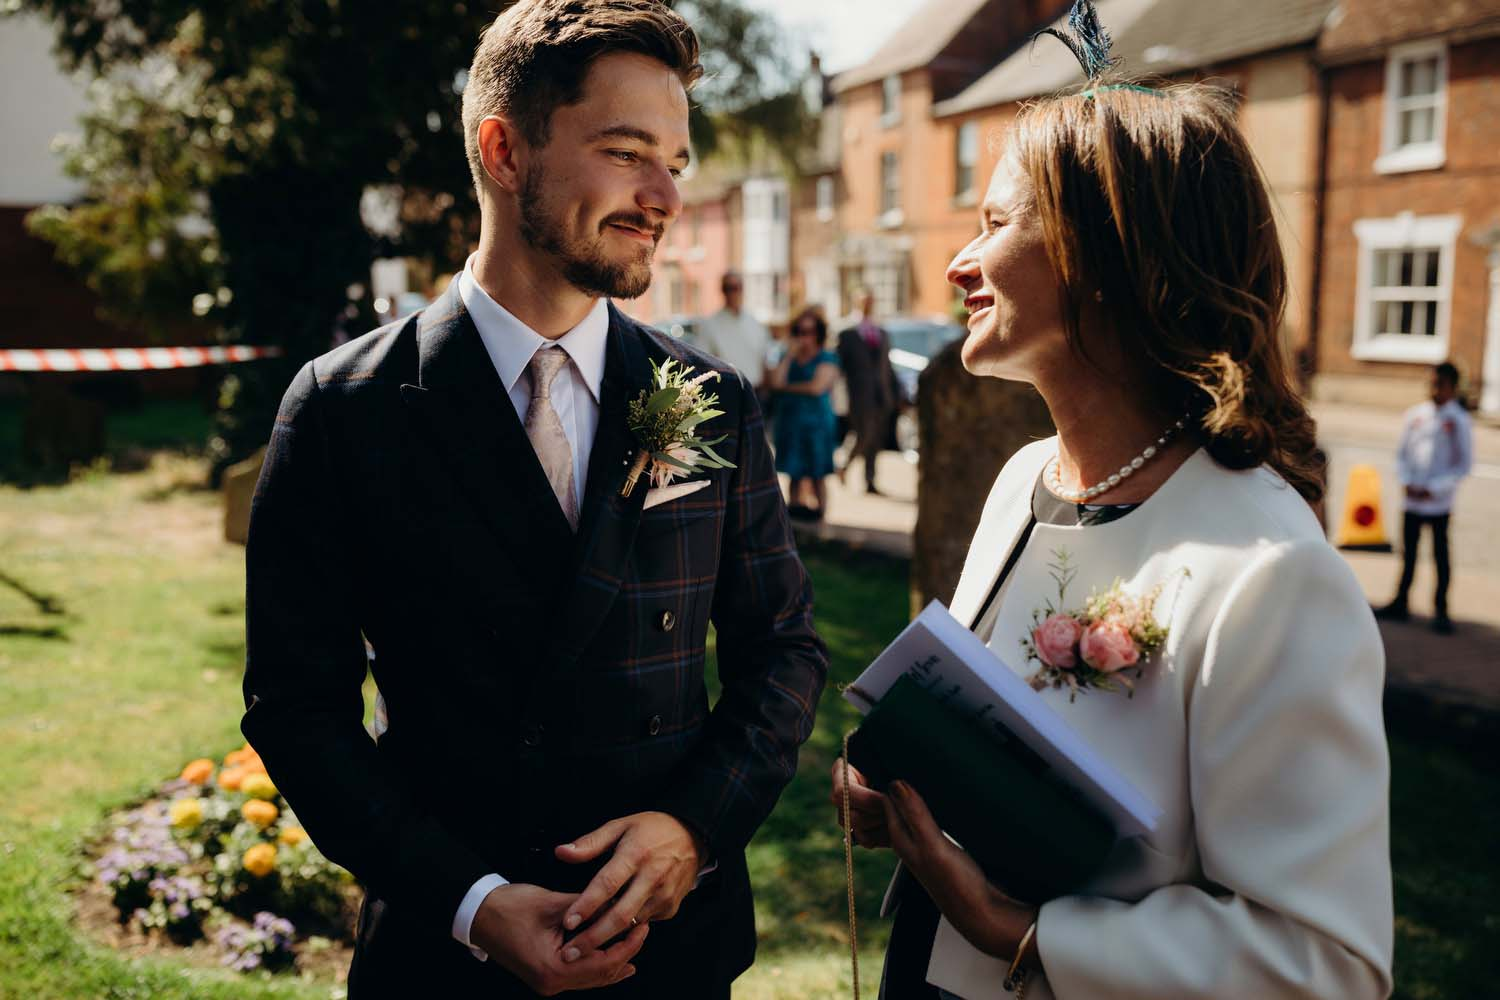 Groom and mother smile at each other